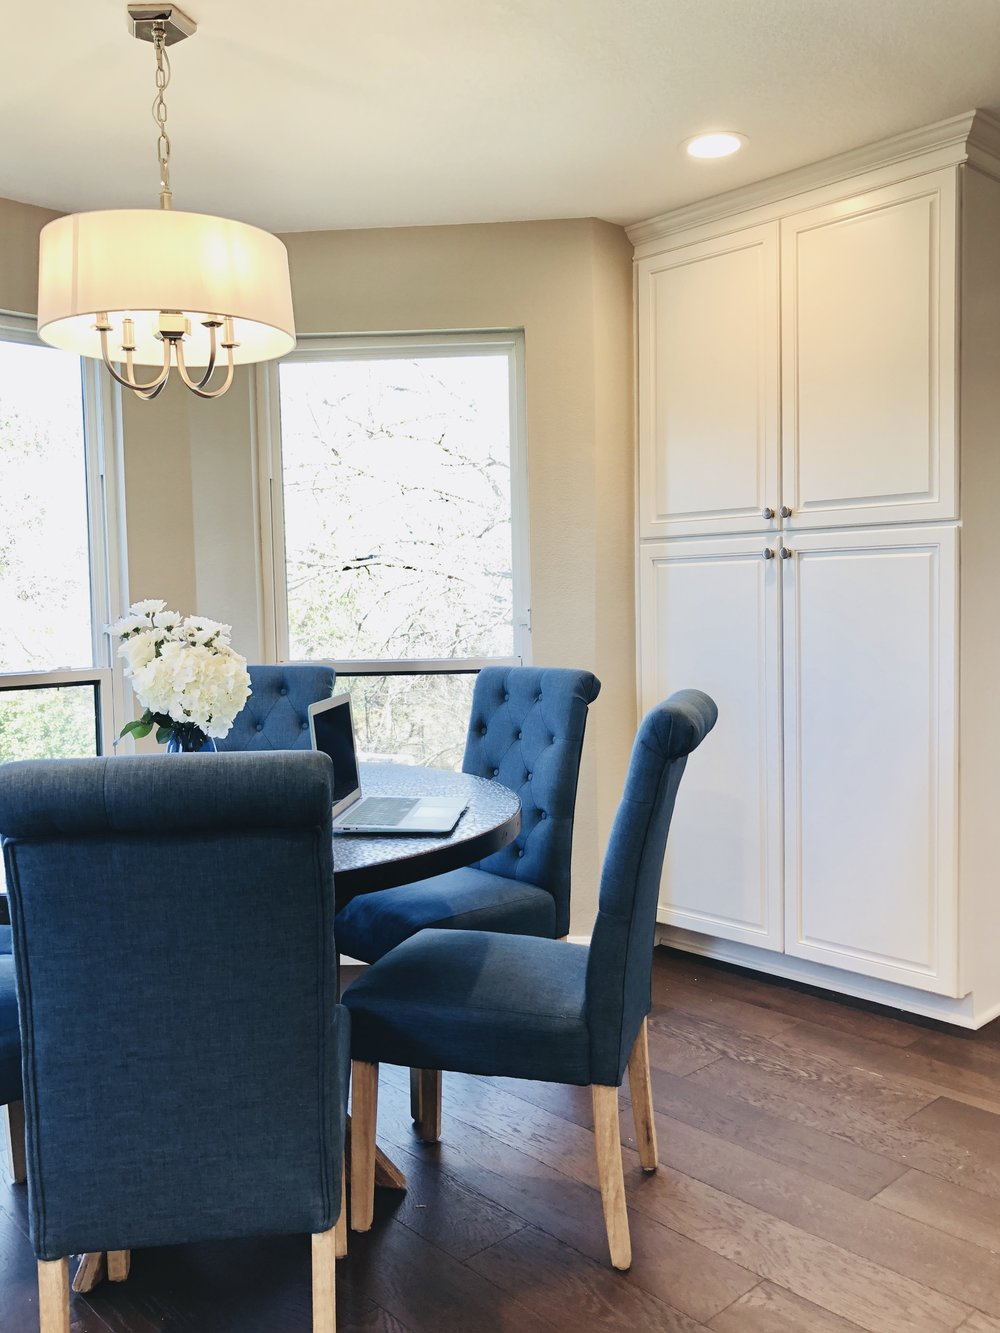 Breakfast and Pantry Cabinets